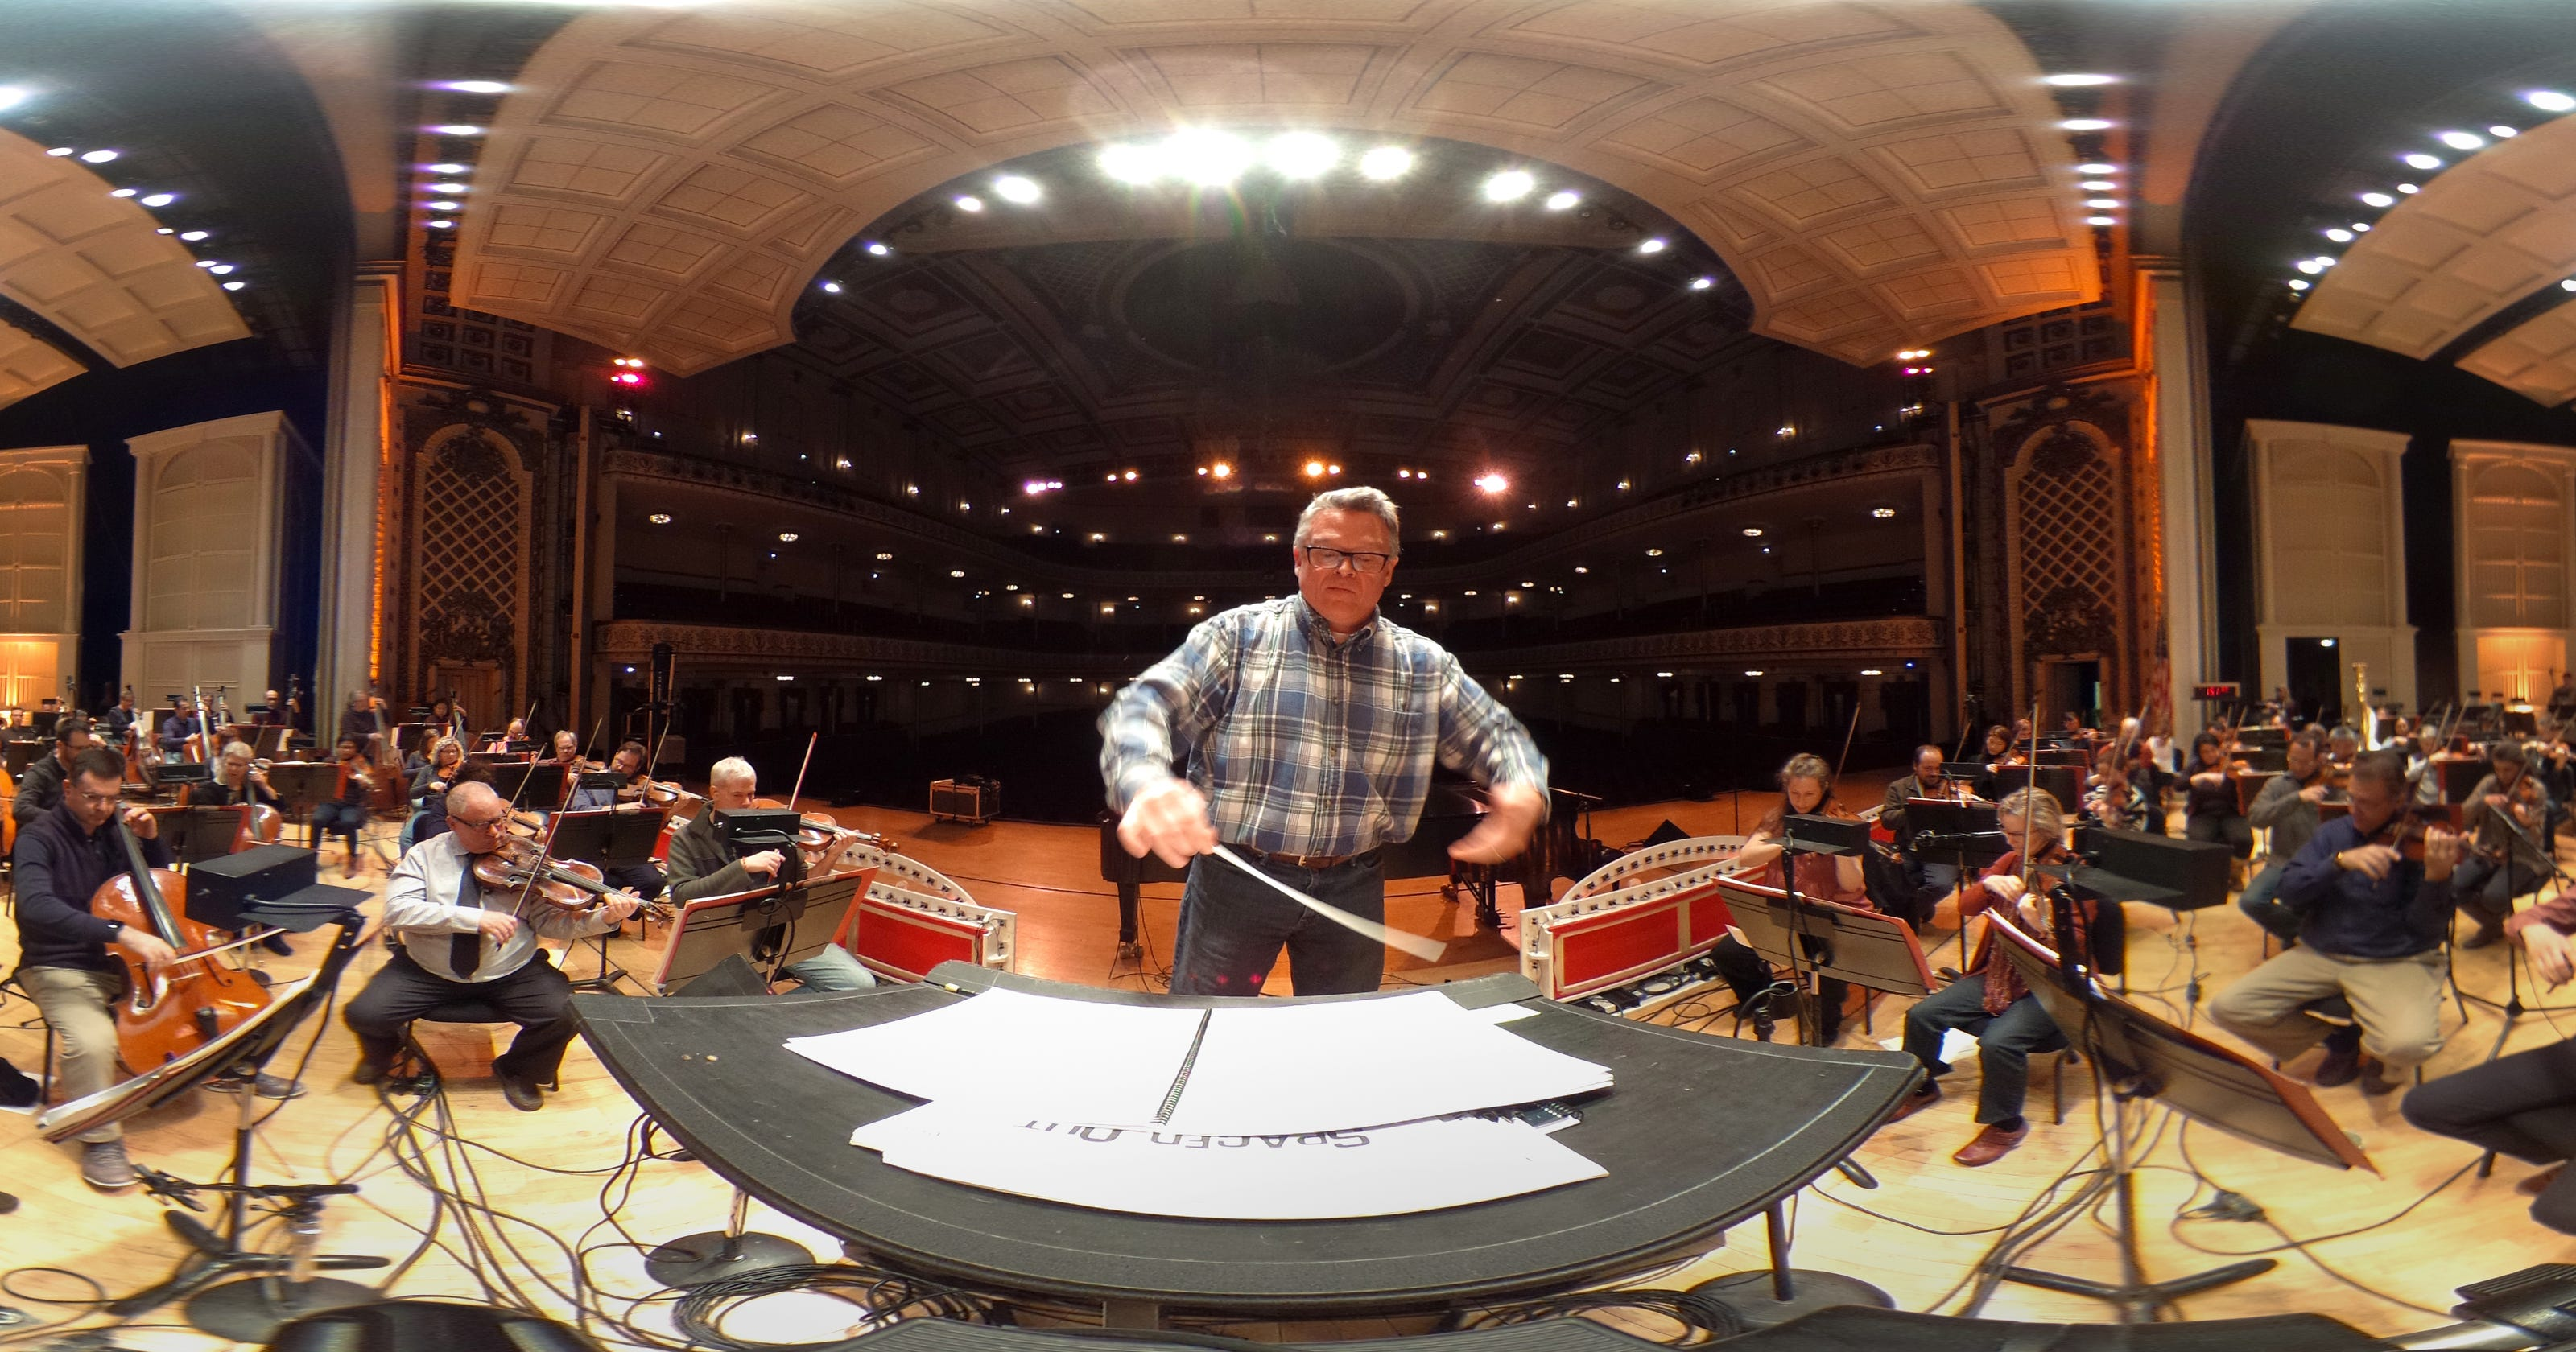 VIDEO: A 360-degree view of a Cincinnati Pops Orchestra